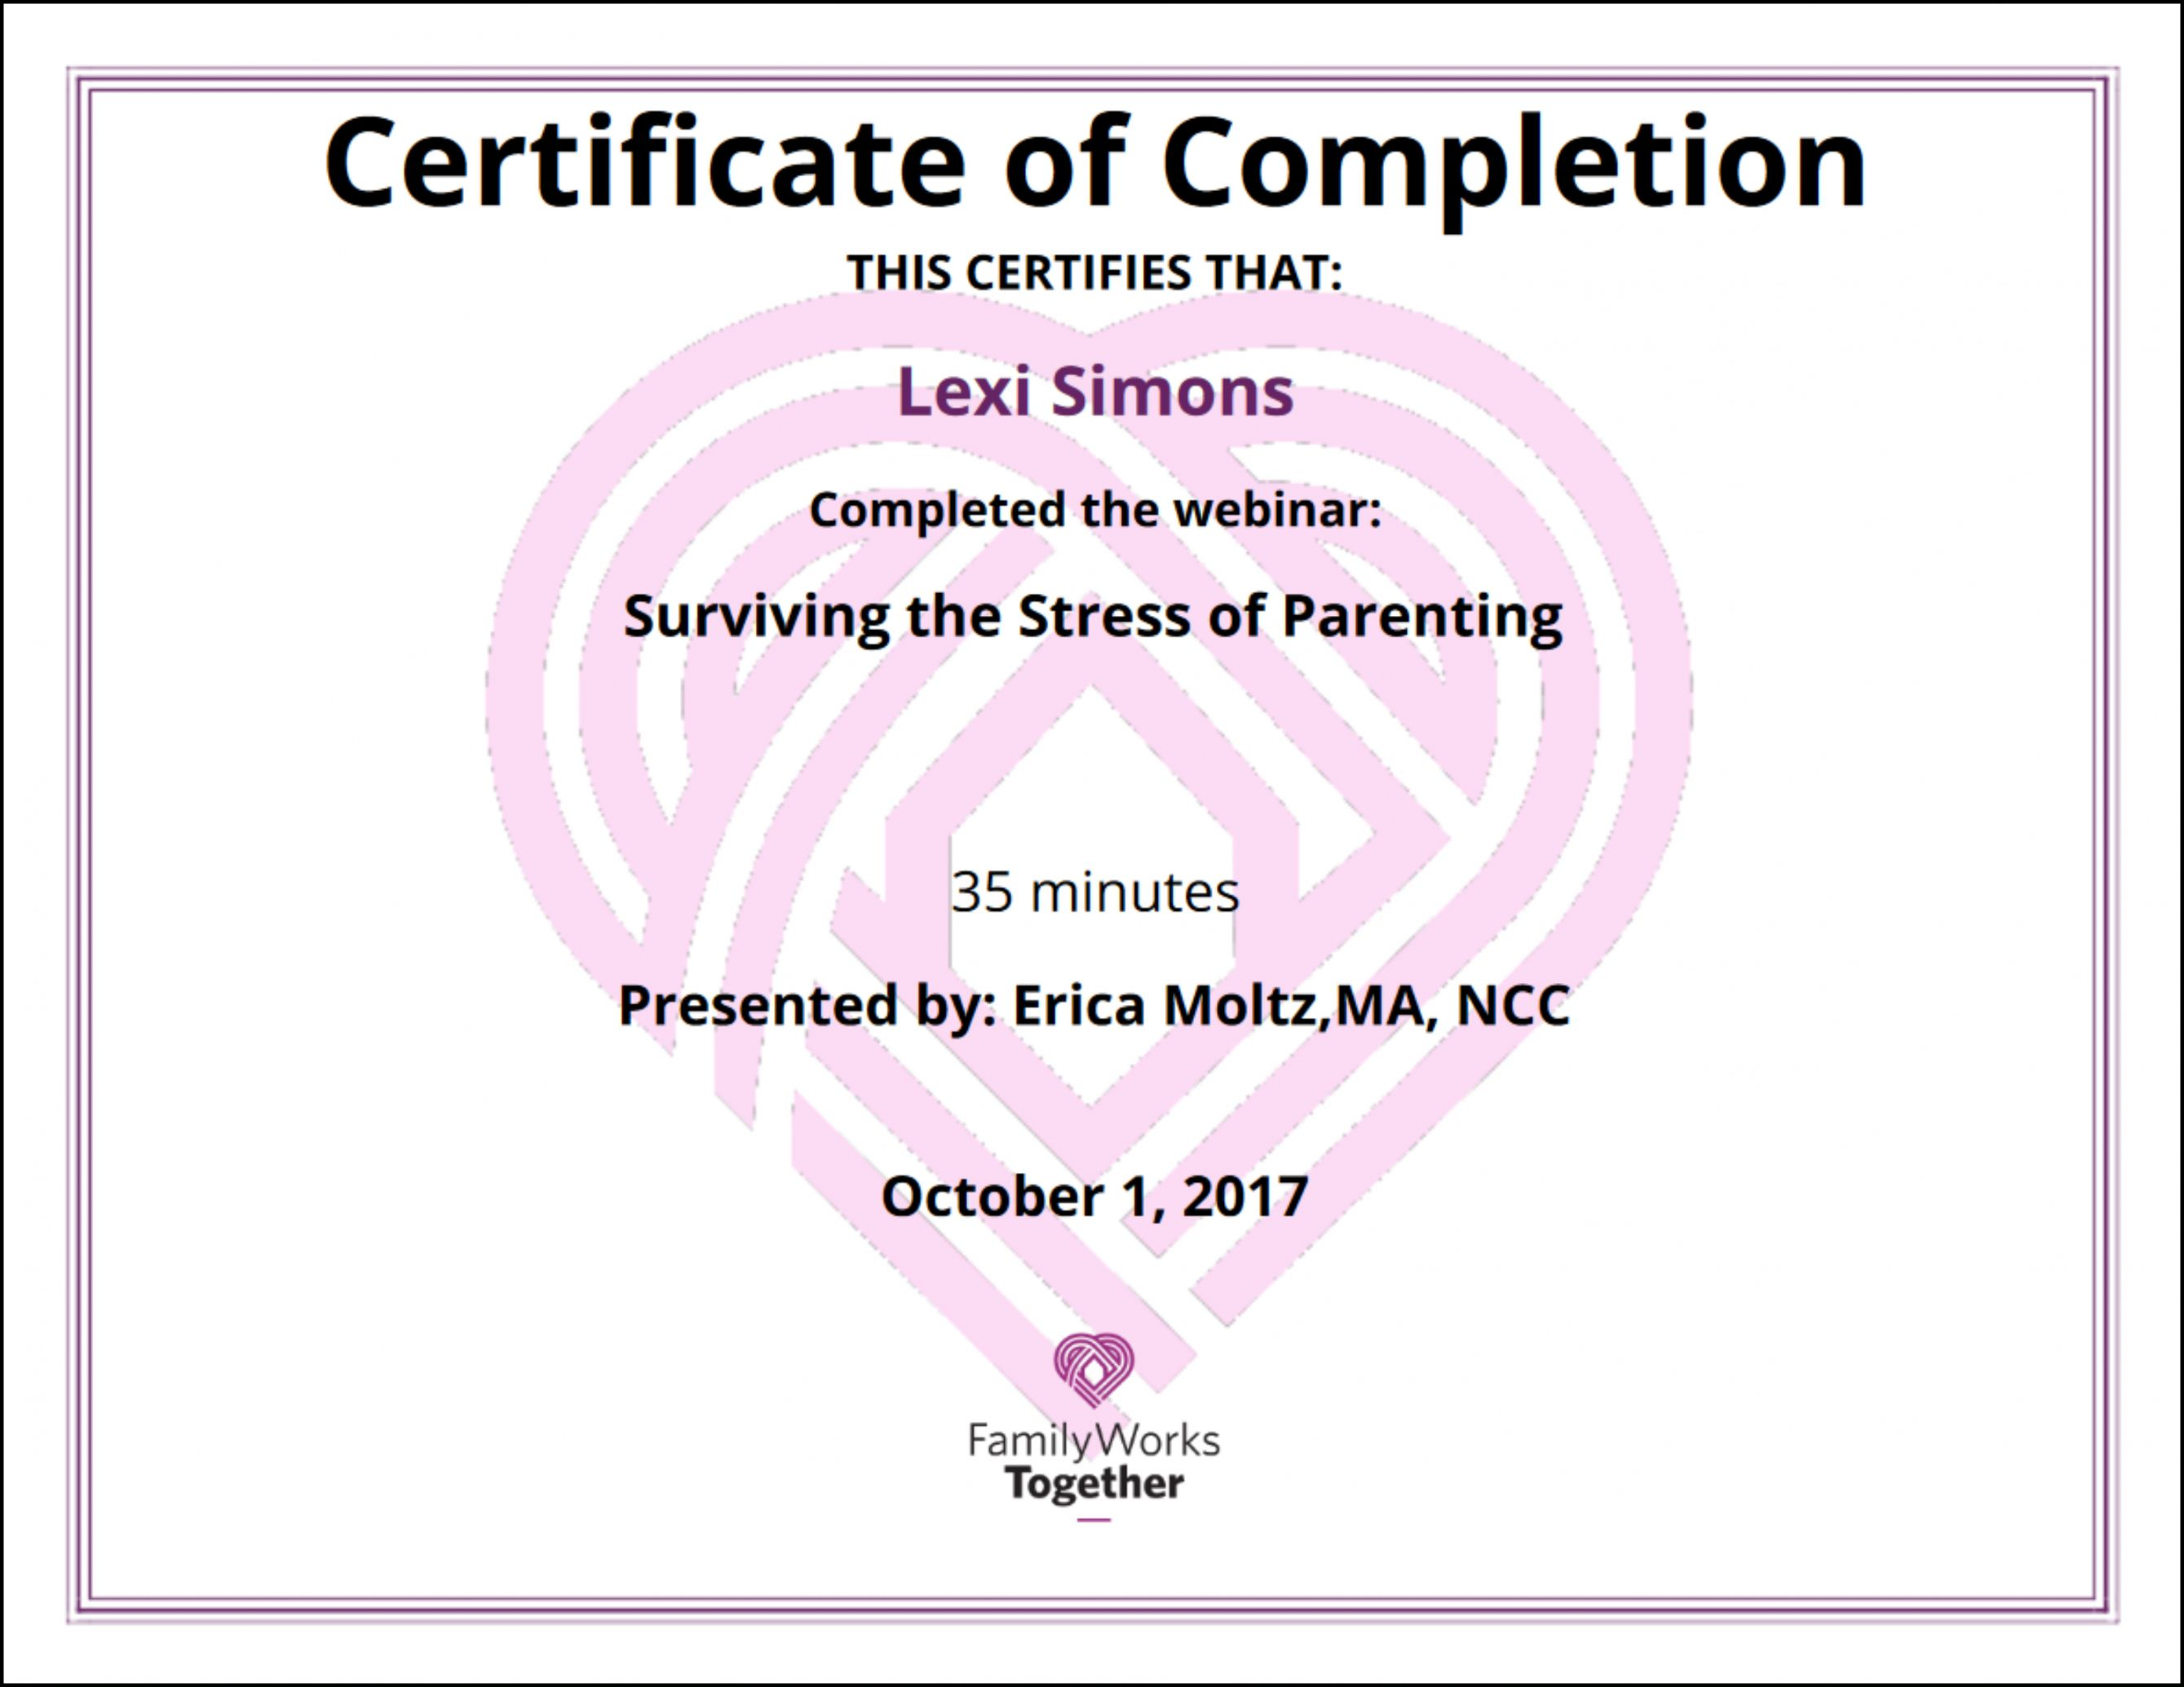 Get Our Free Parenting Class Certificate Of Completion Template Certificate Of Completion Template Certificate Of Completion Parenting Classes